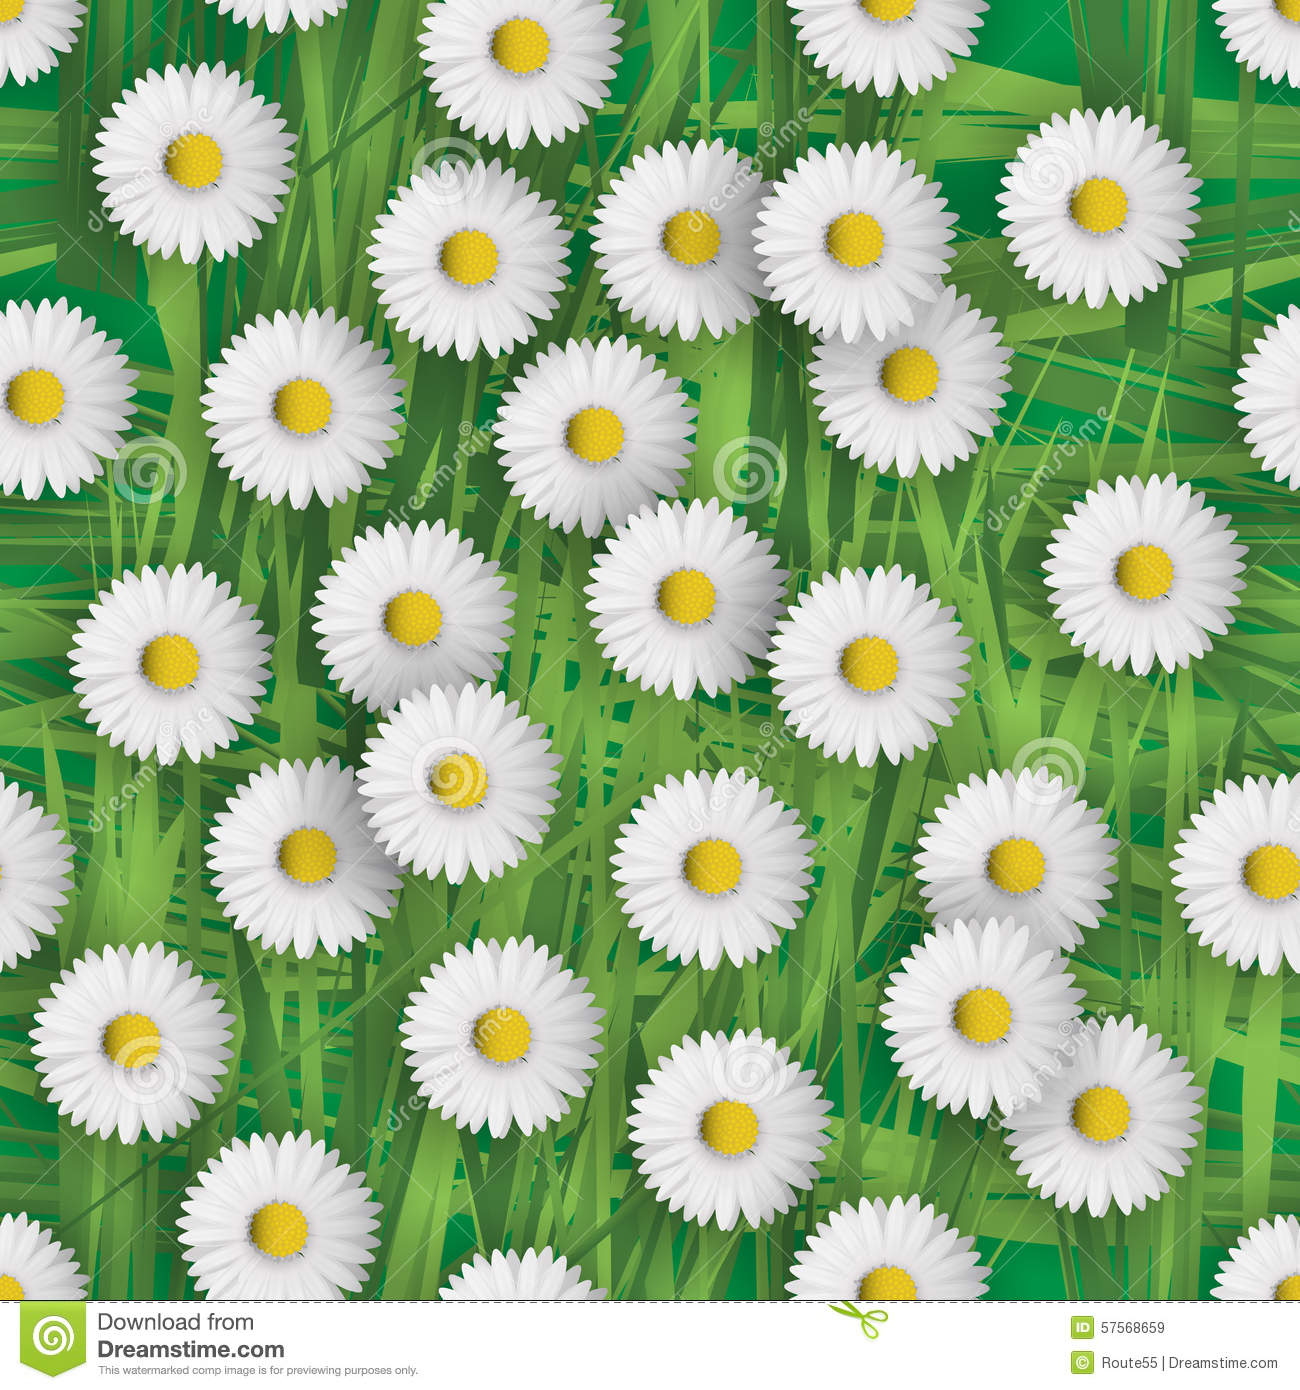 Daisy Flowers Stock Vector Illustration Of Meadow Field 57568659